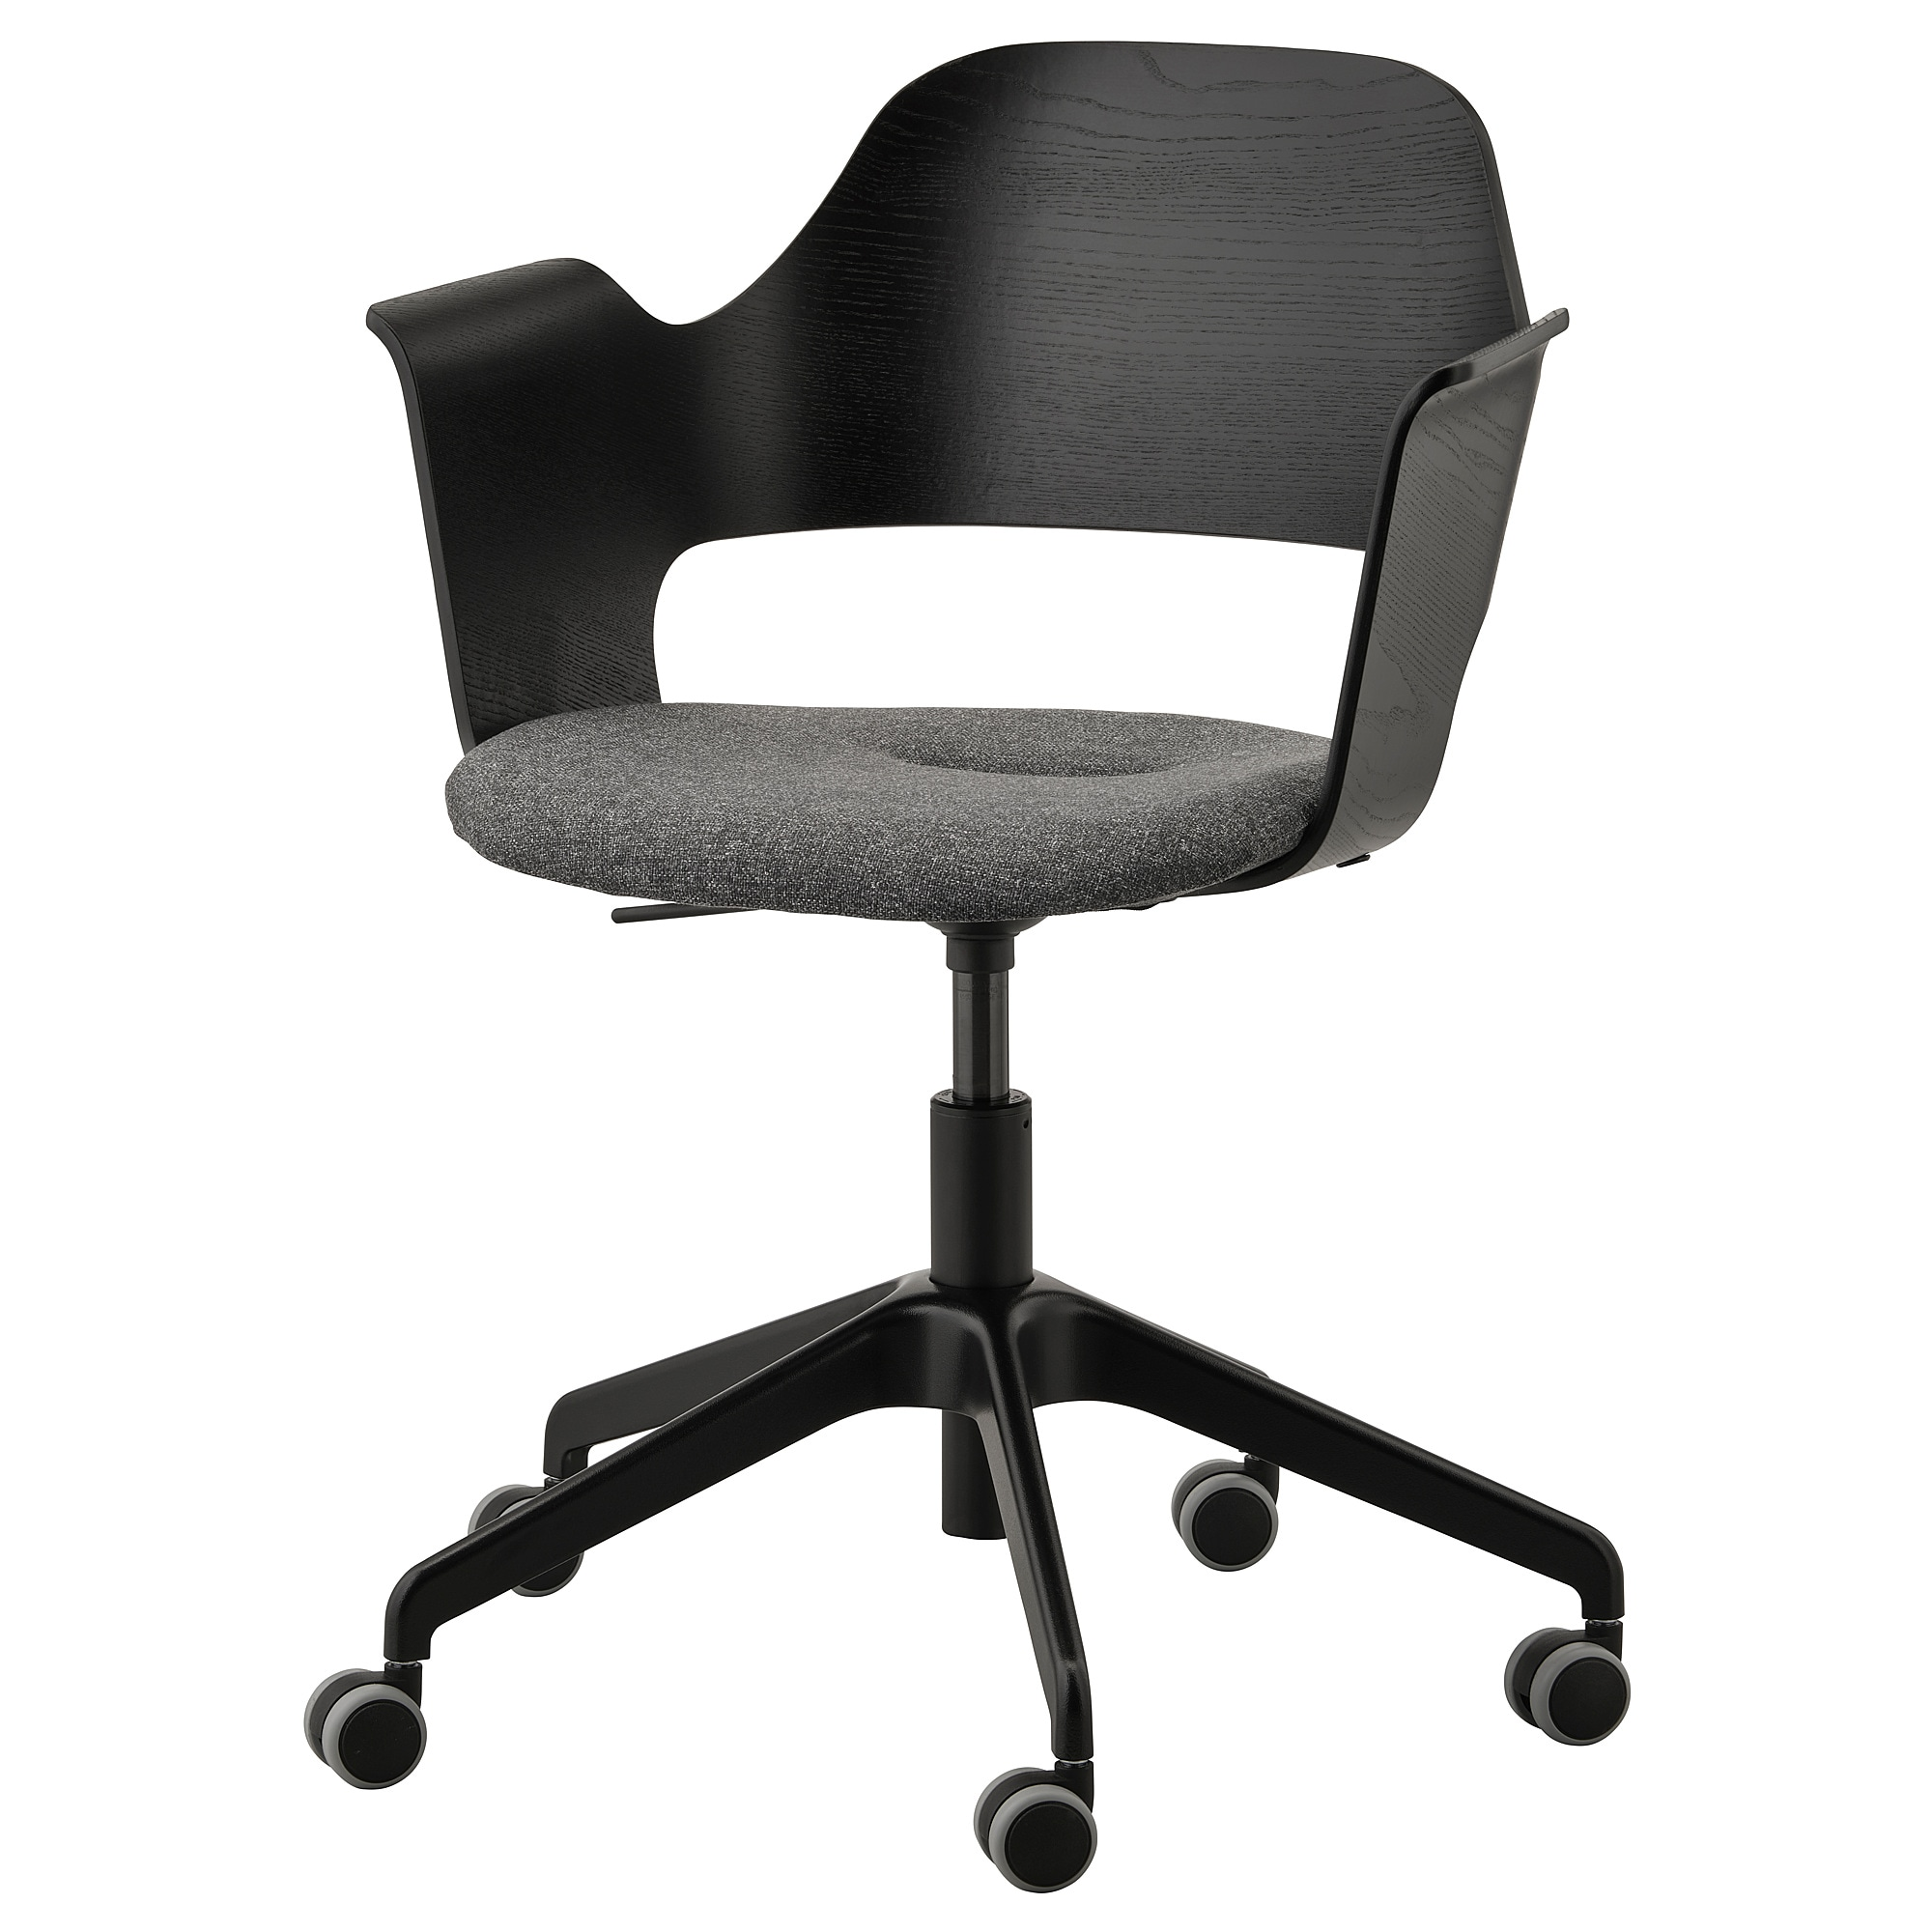 Ordinaire Swivel Chairs   Spinning Chairs   IKEA